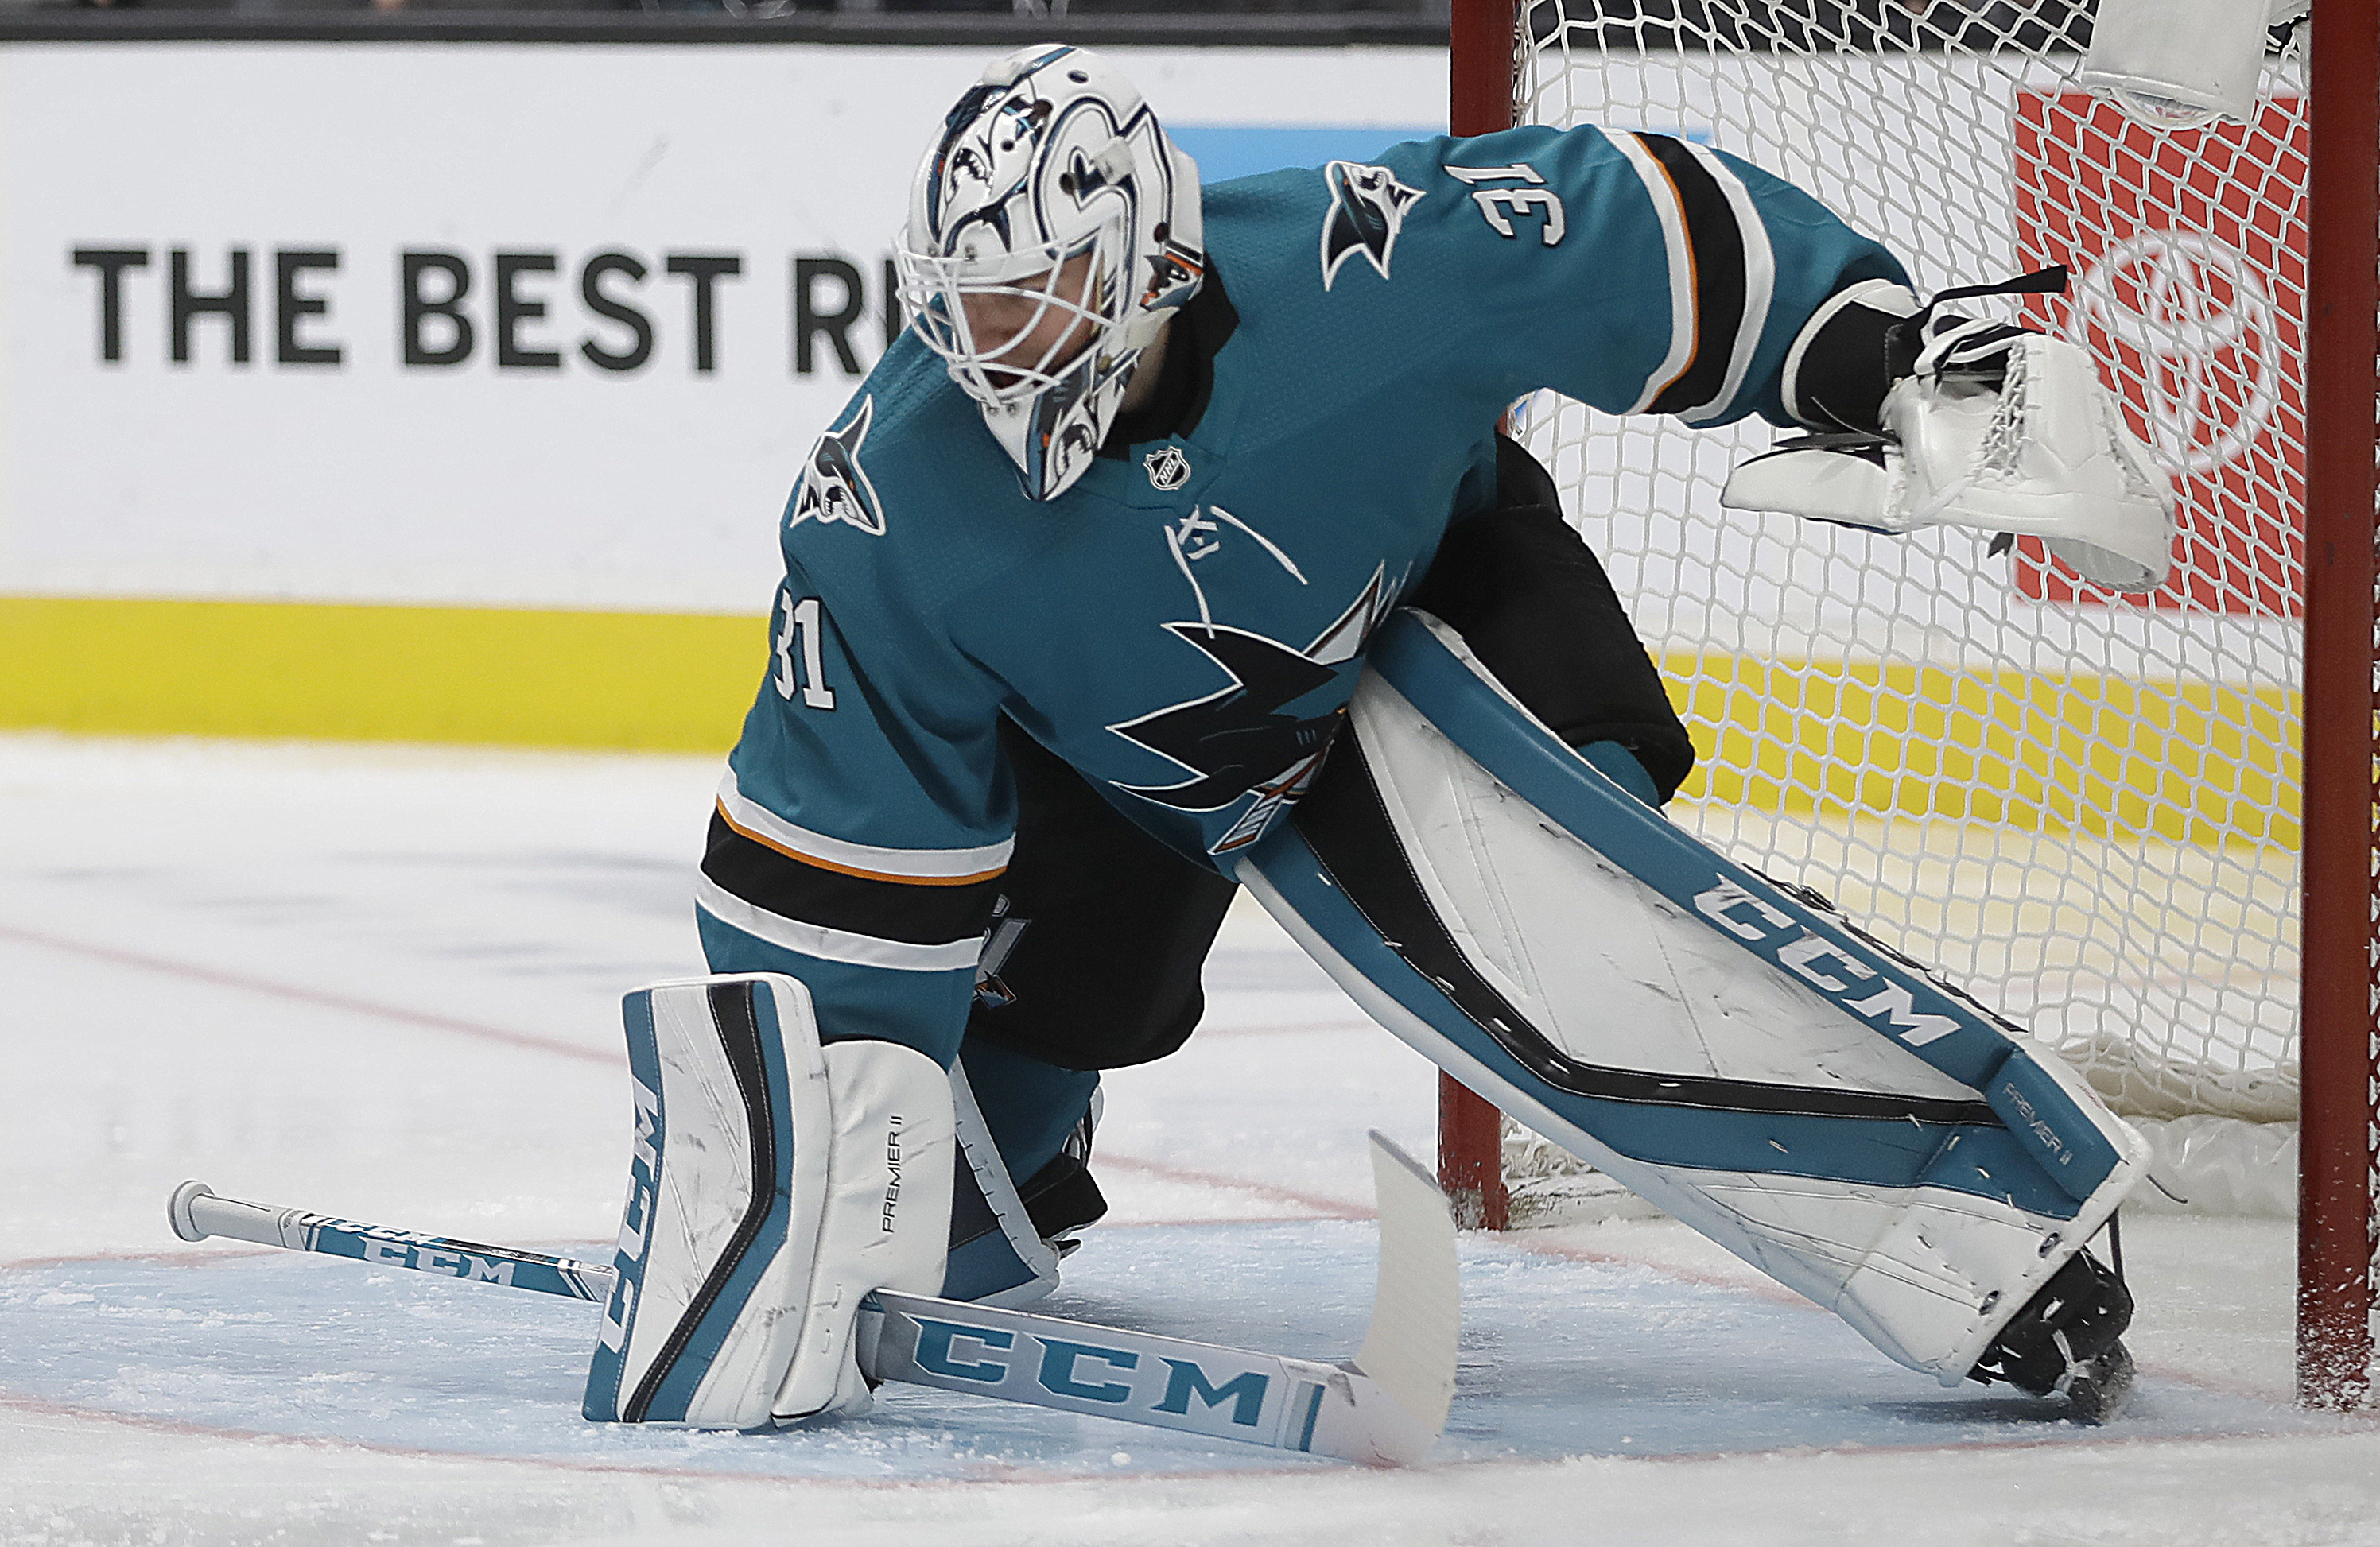 Hertl scores in 4th straight game, Sharks top Oilers 6-3